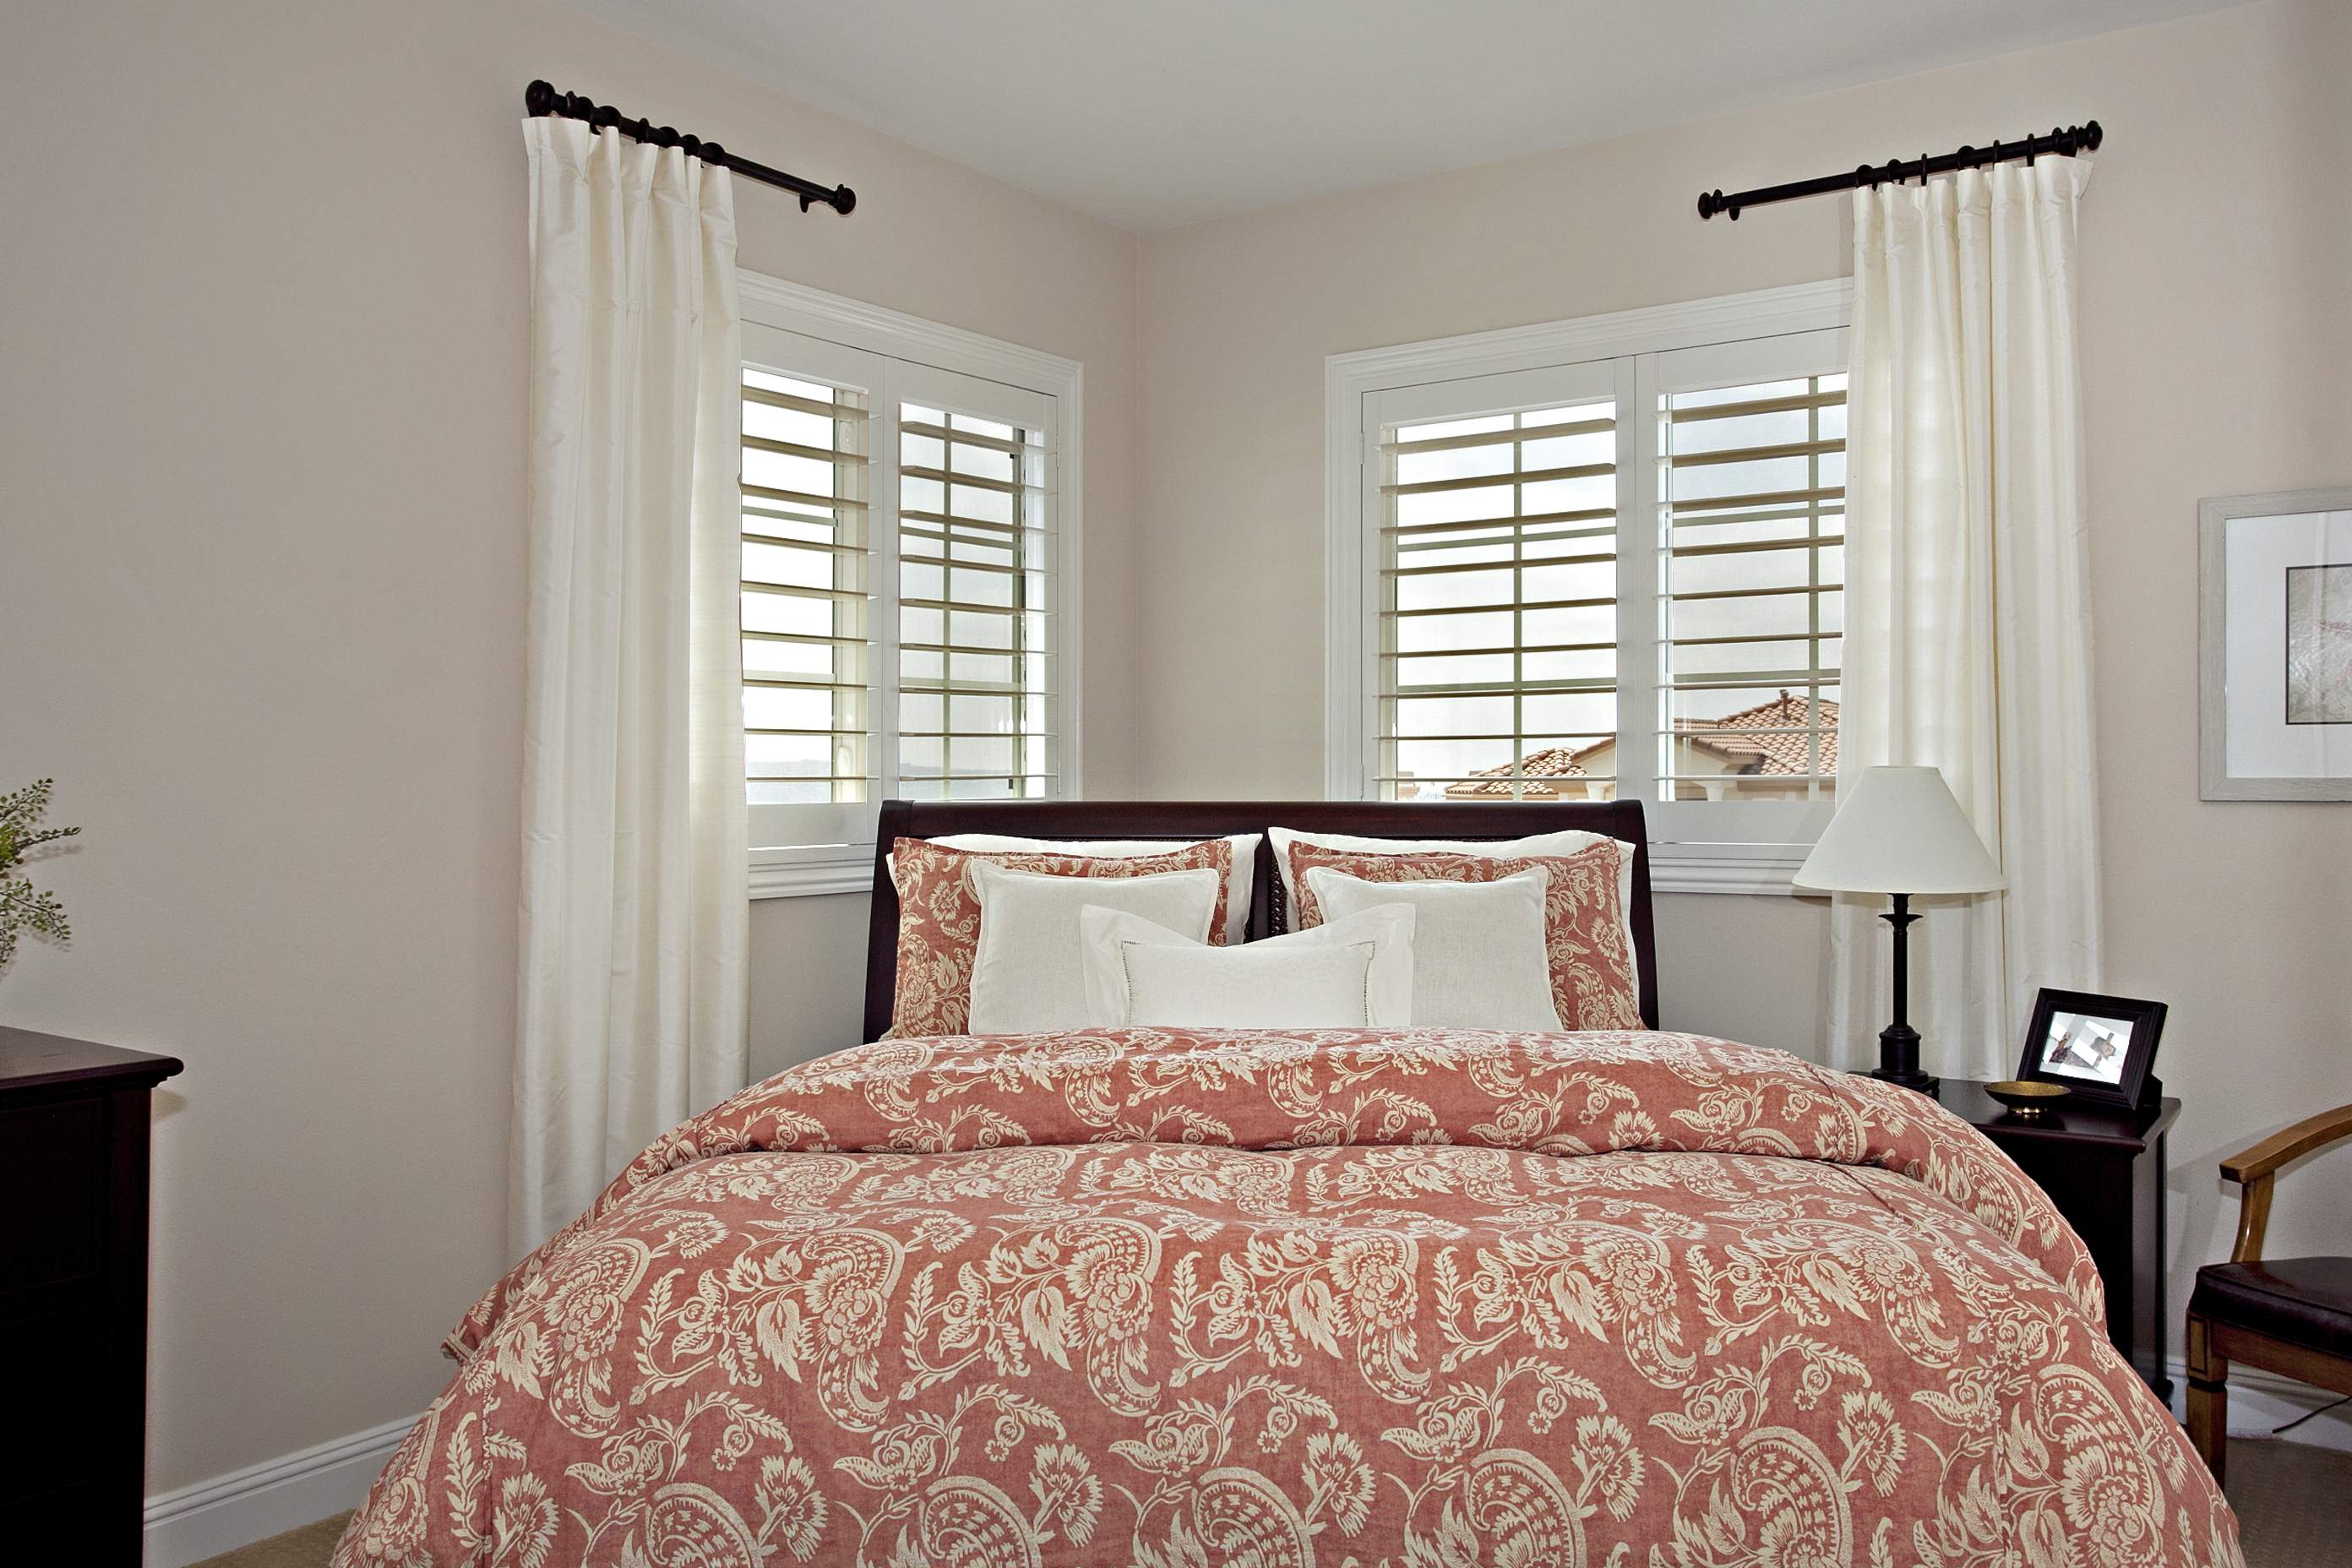 Shutters with decorative panels and handle cutout